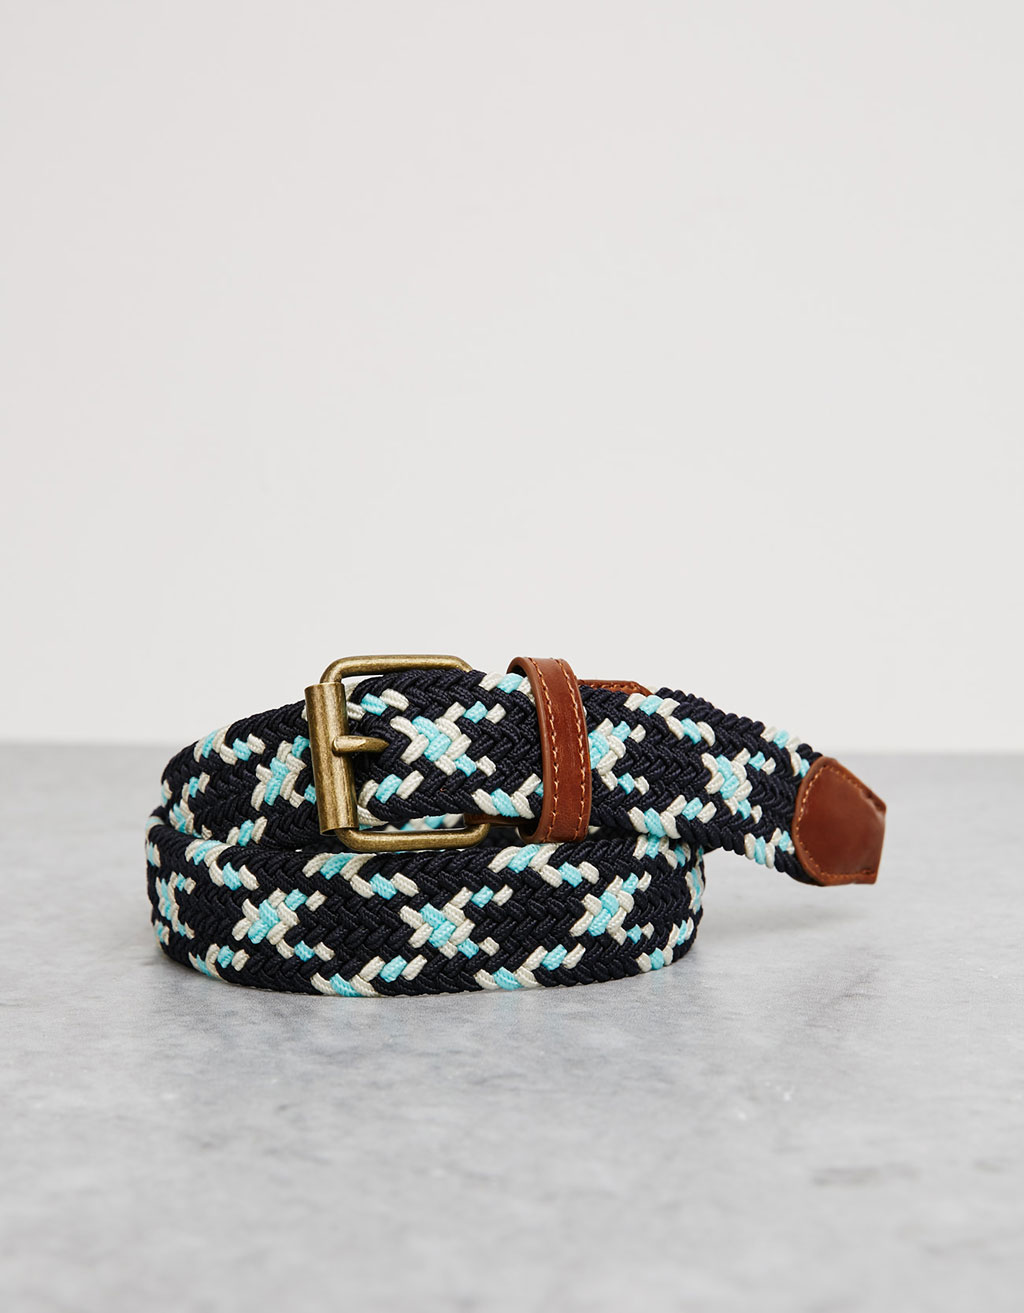 Multicolour braided belt